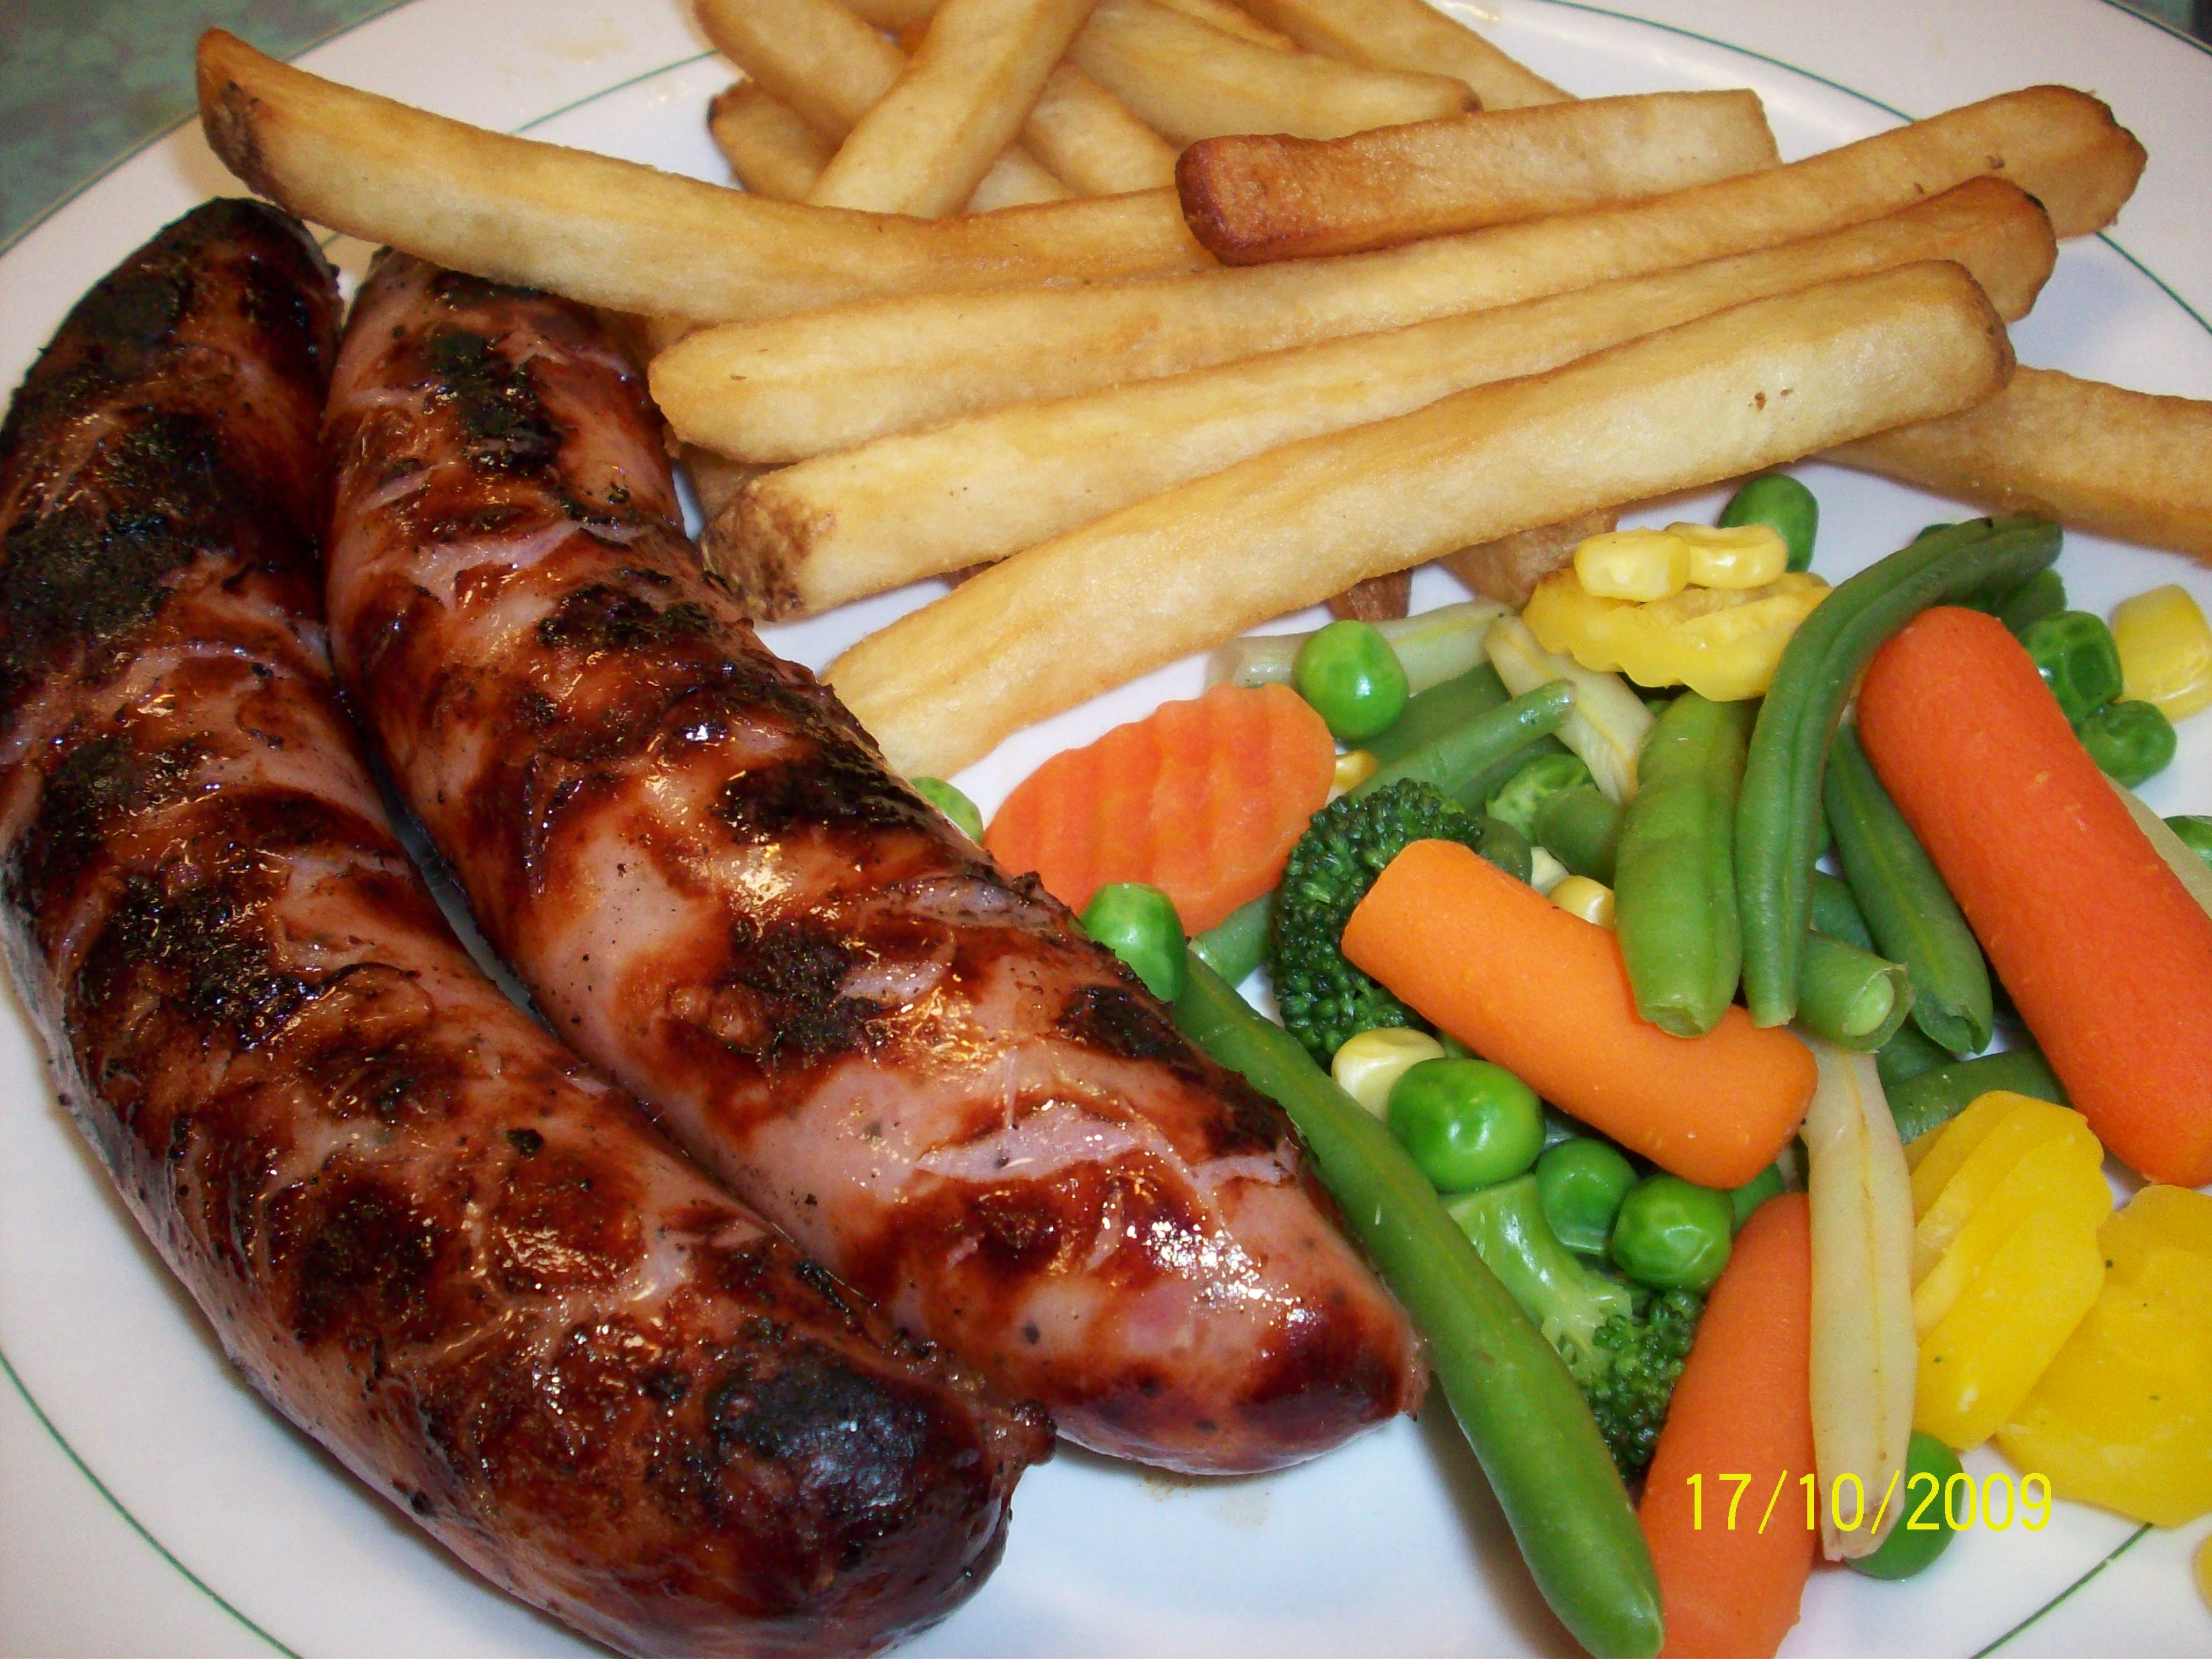 http://foodloader.net/cutie_2009-10-17_Burned_Sausages__Mized_Veggies_and_Fries.jpg